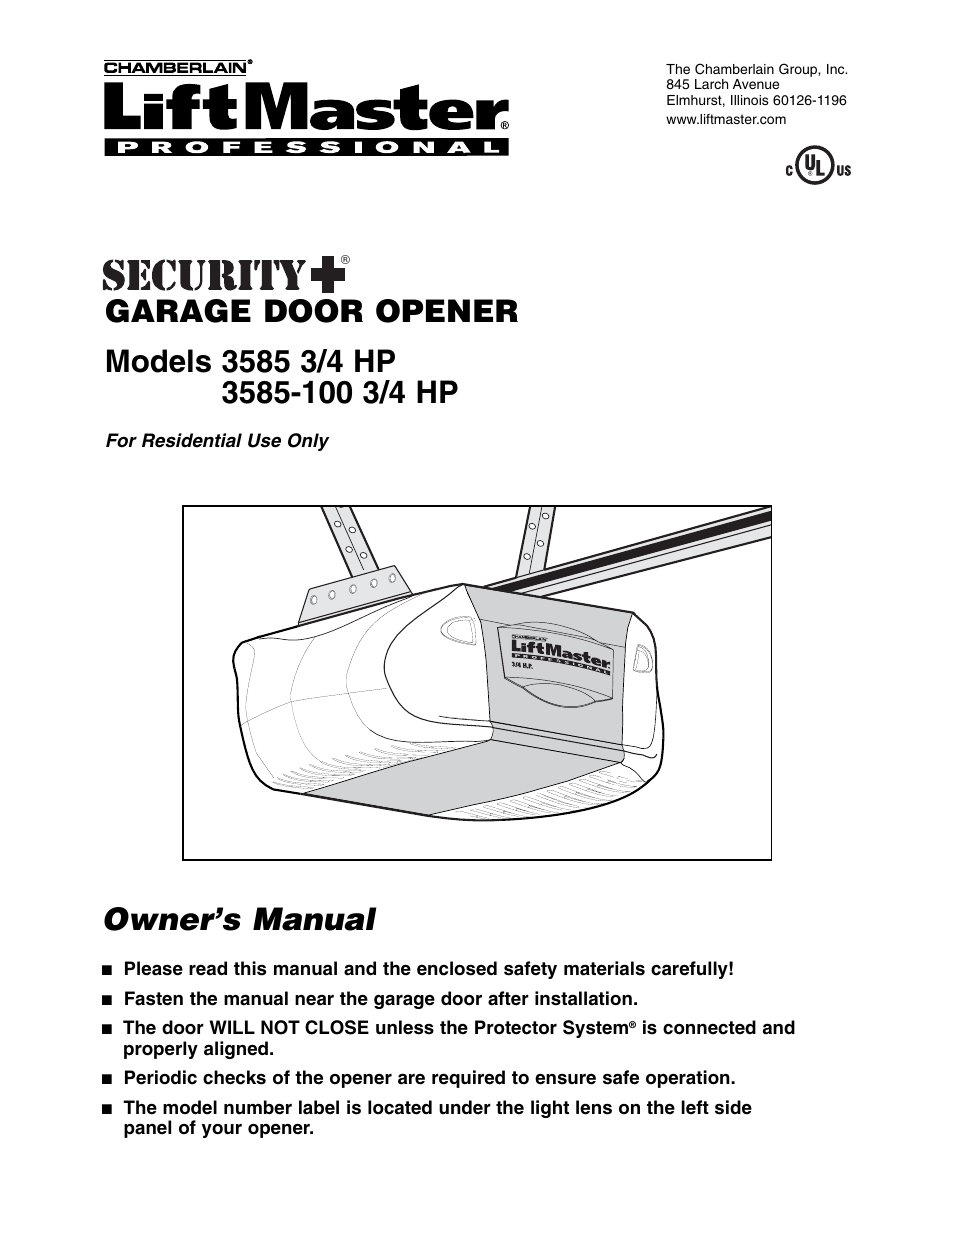 Chamberlain 3585-100 3/4 HP User Manual | 36 pages | Also for: 585 3/4 HP